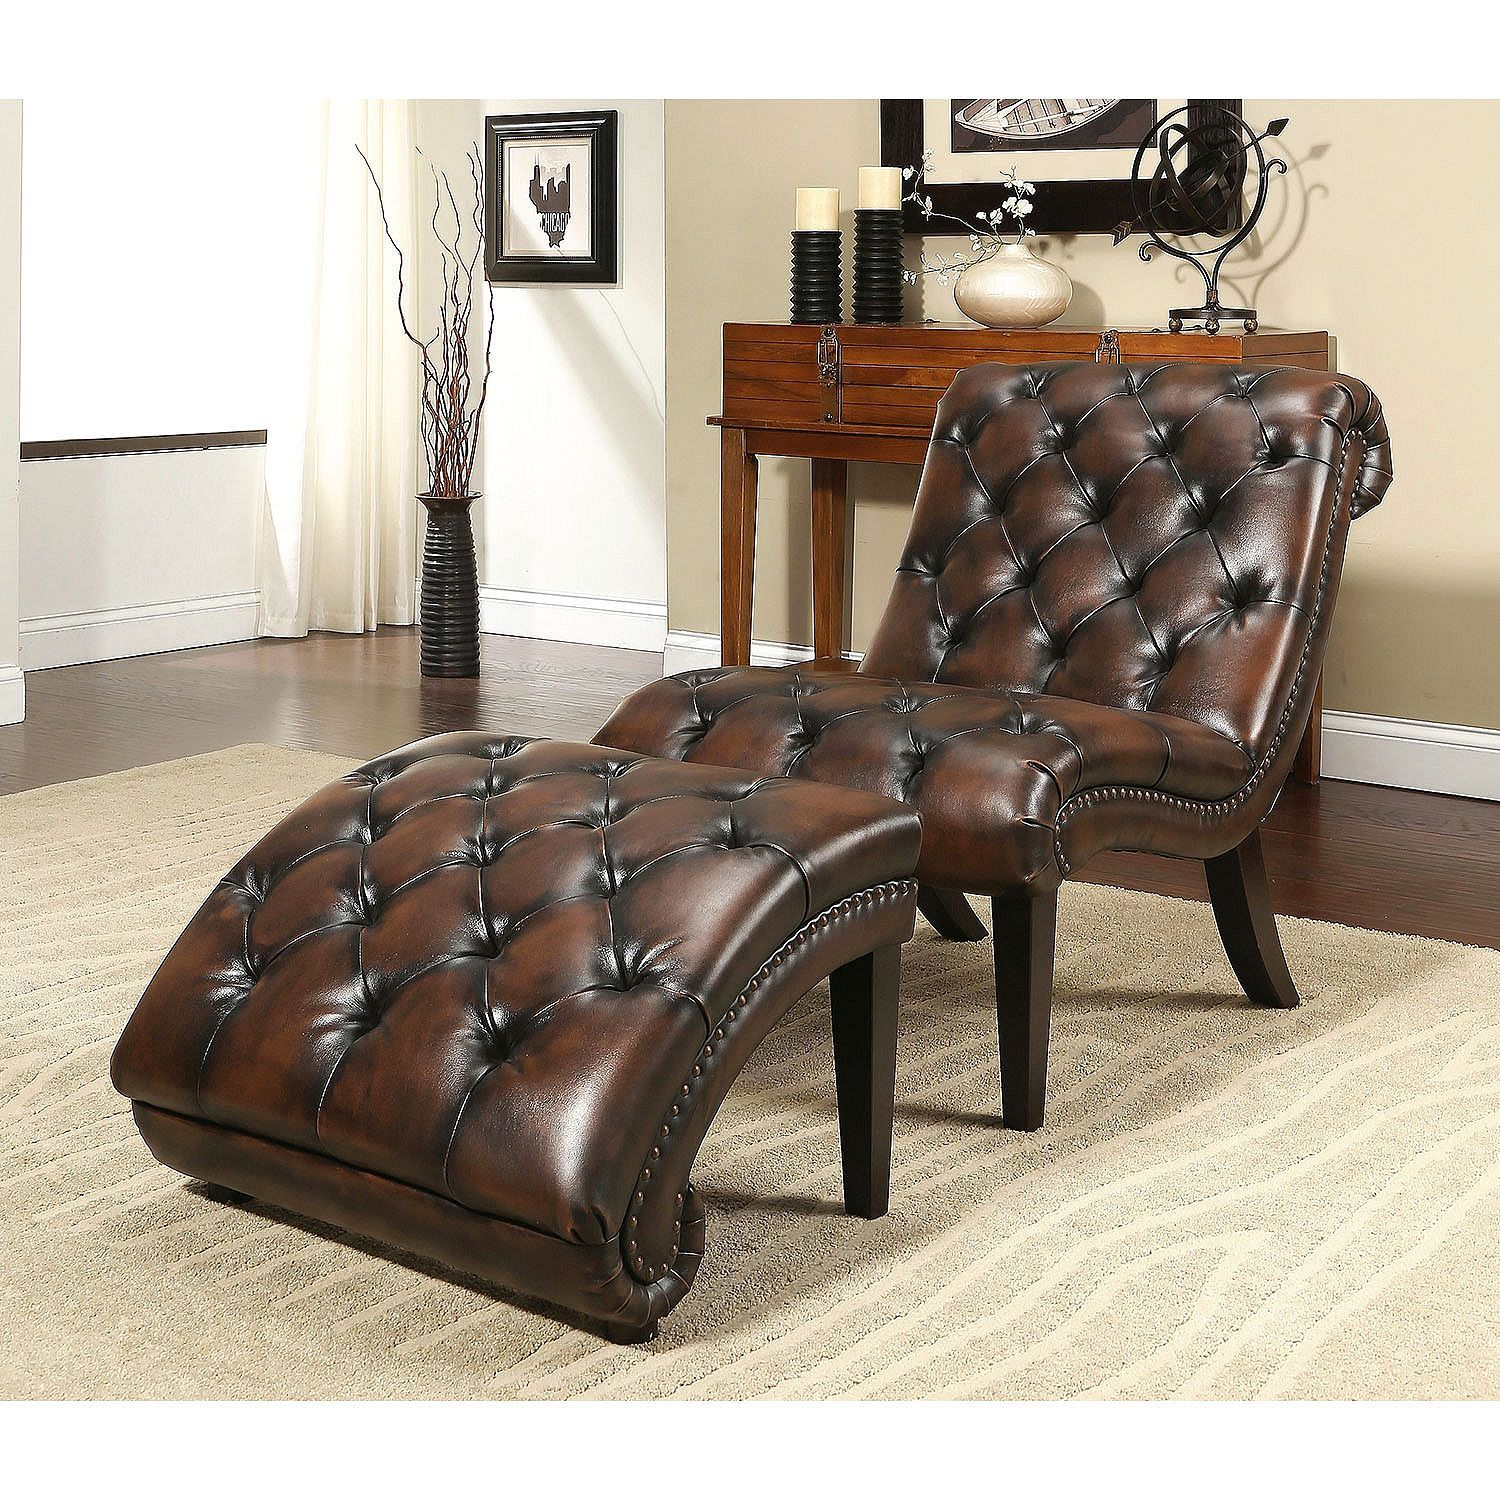 Patrick Leather Chaise Lounge Chair and Ottoman - Samu0027s Club  sc 1 st  Pinterest : sams club chaise lounge - Sectionals, Sofas & Couches